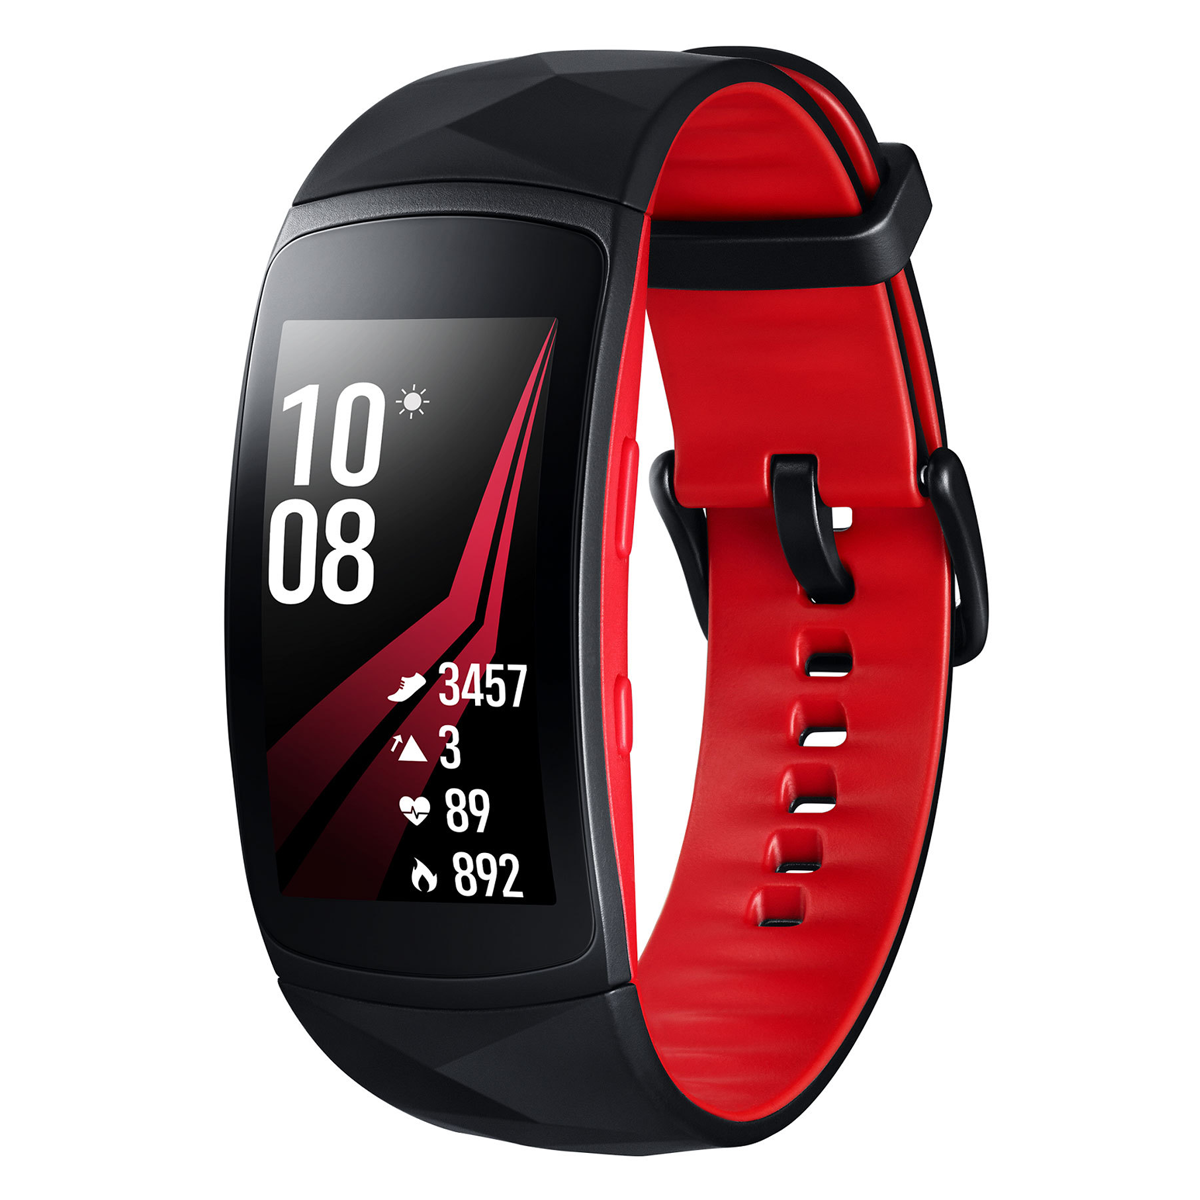 Samsung Wearable Fit2 Pro Small Samsung Gear Fit Samsung Gear Fit 2 Samsung